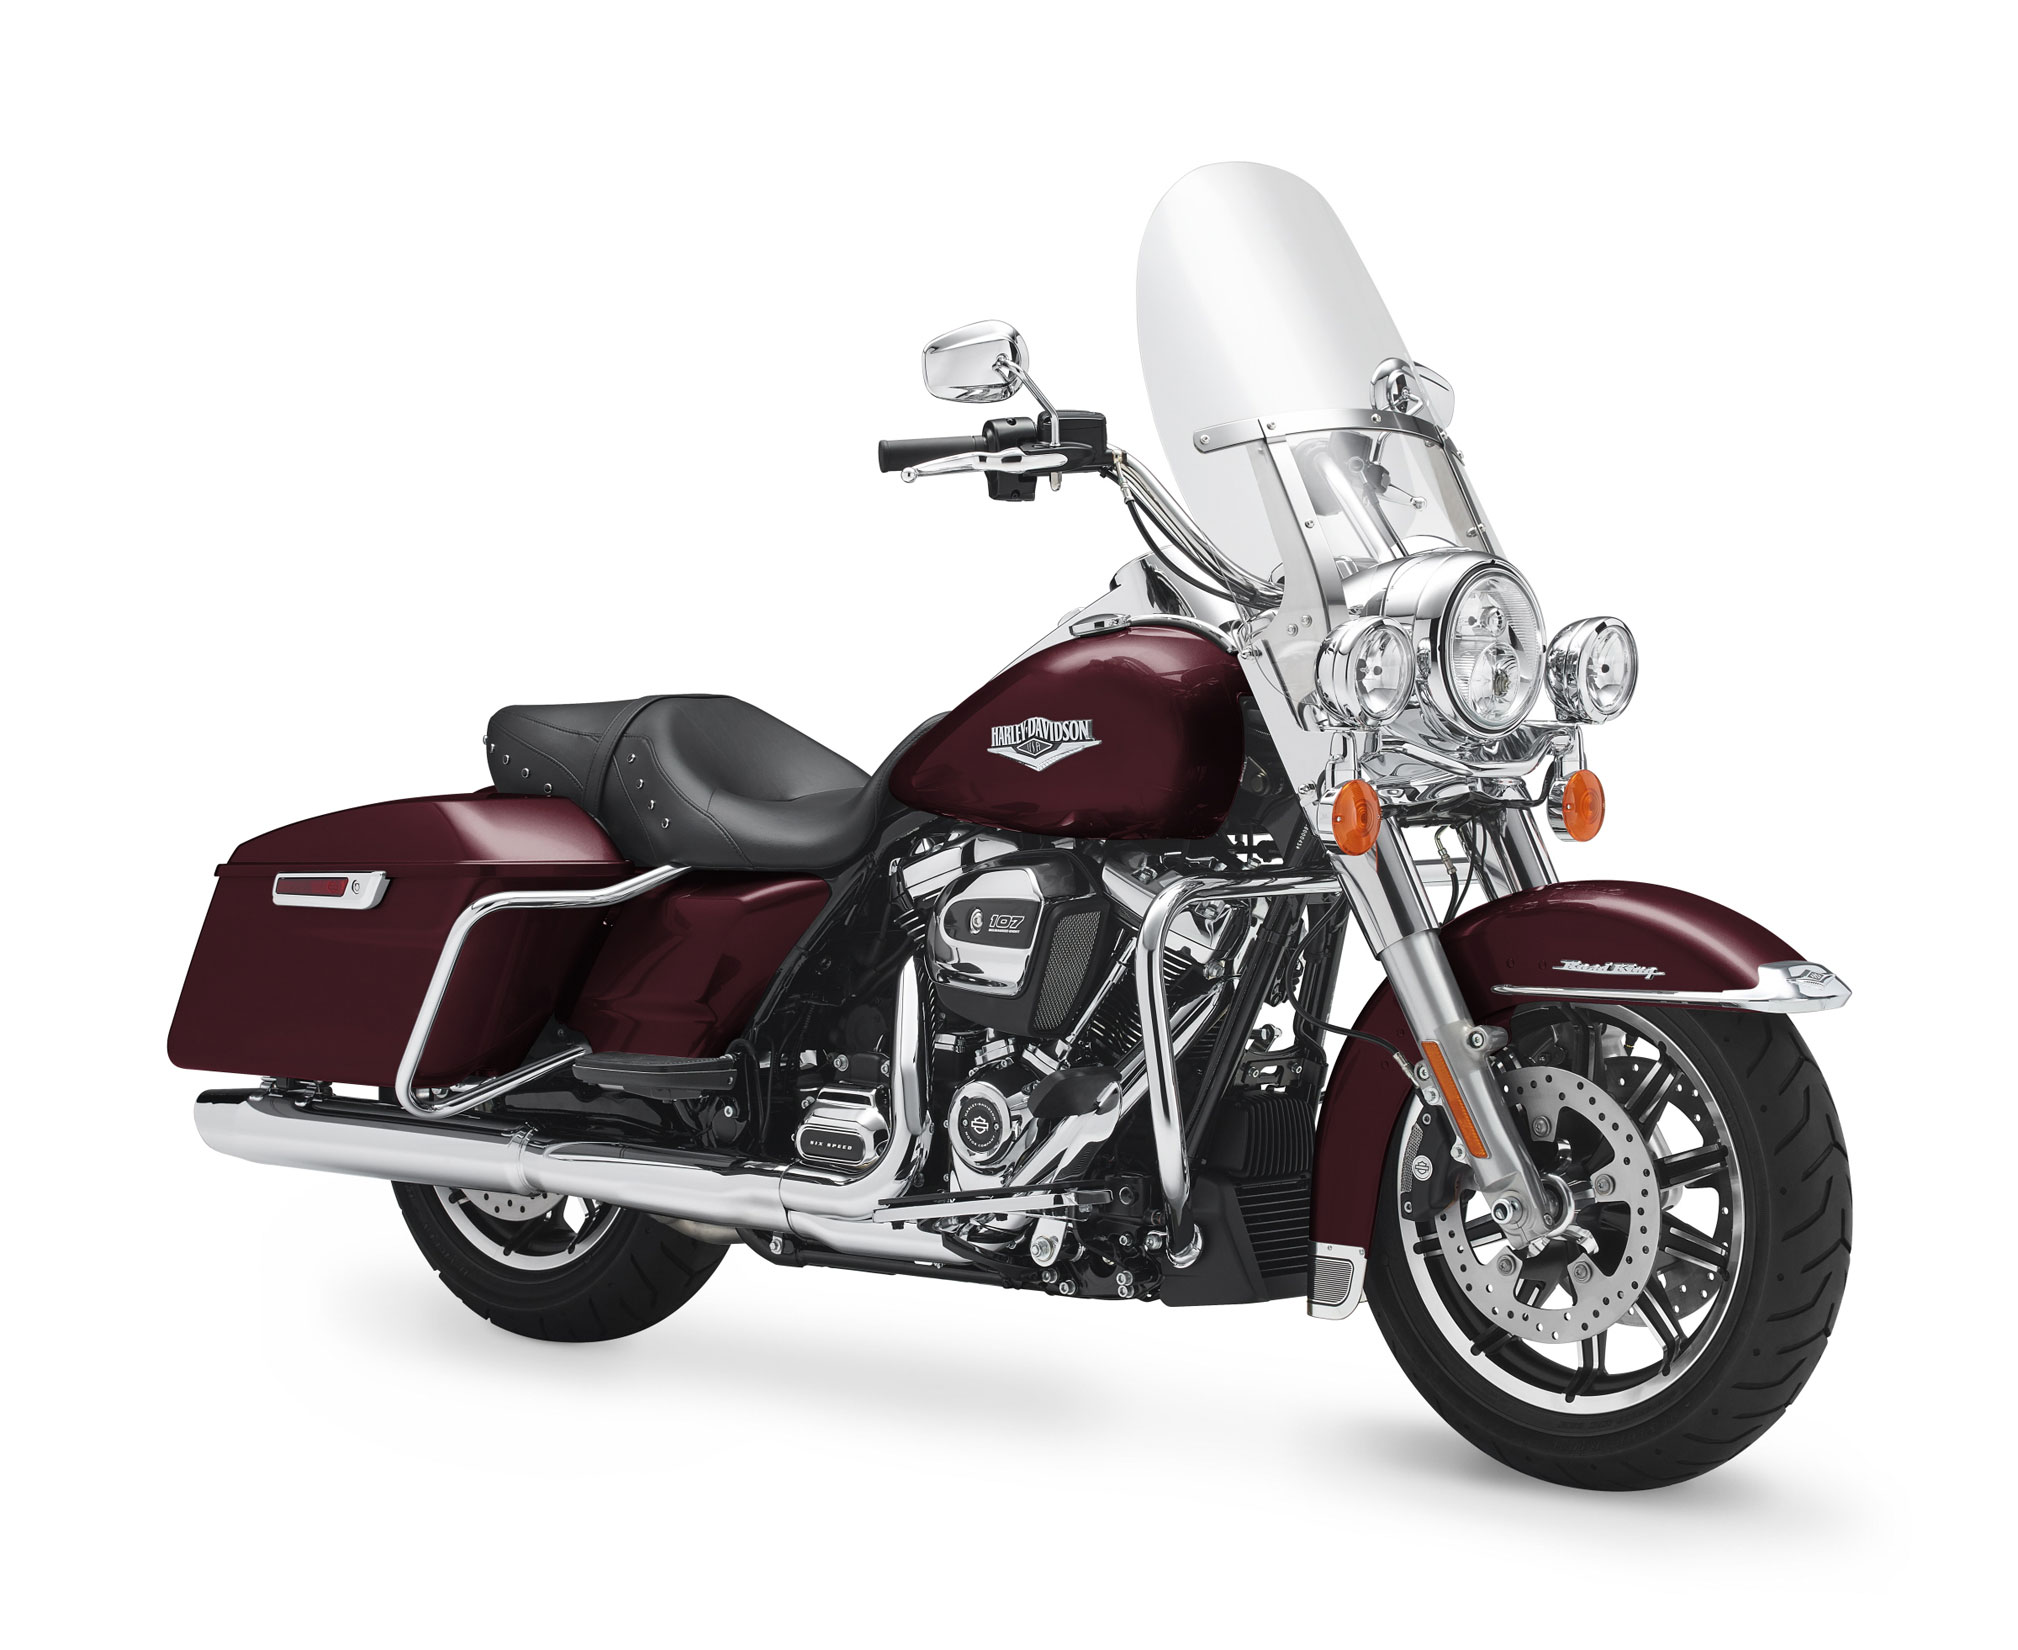 2018 Harley-Davidson Road King Review • Total Motorcycle